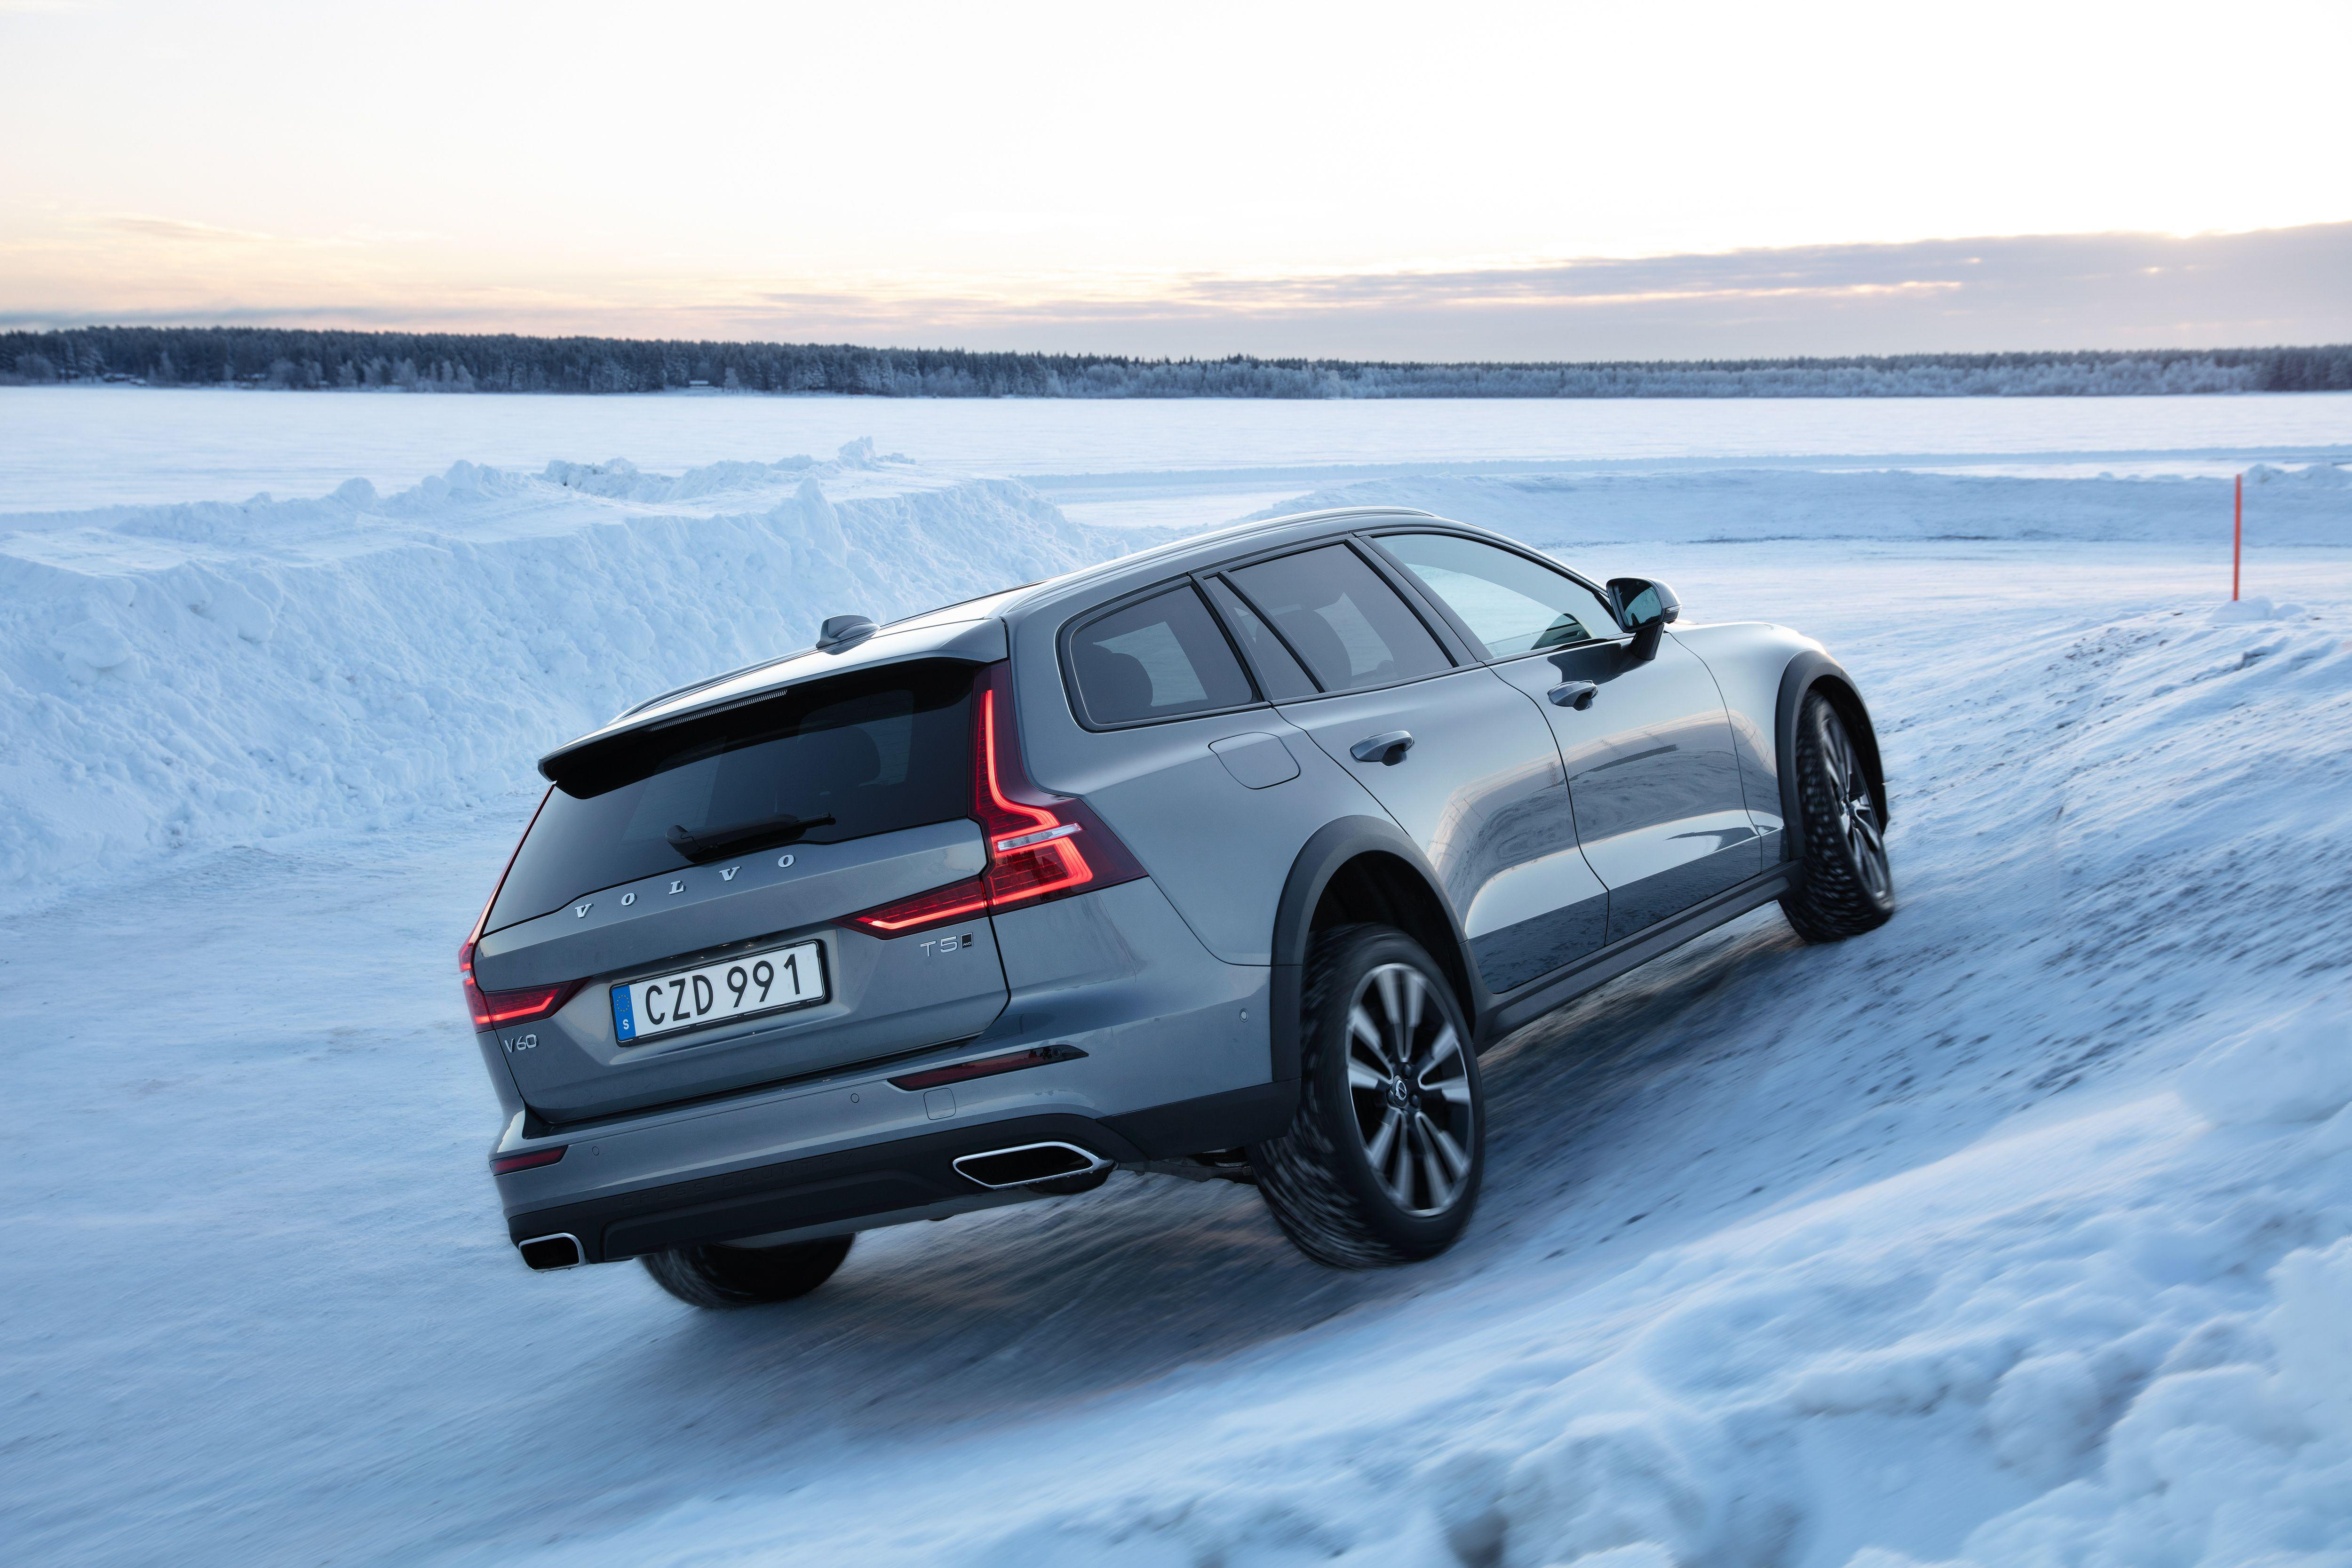 Volvo V60 Cross Country >> Every Photo From Our Drive In The 2020 Volvo V60 Cross Country